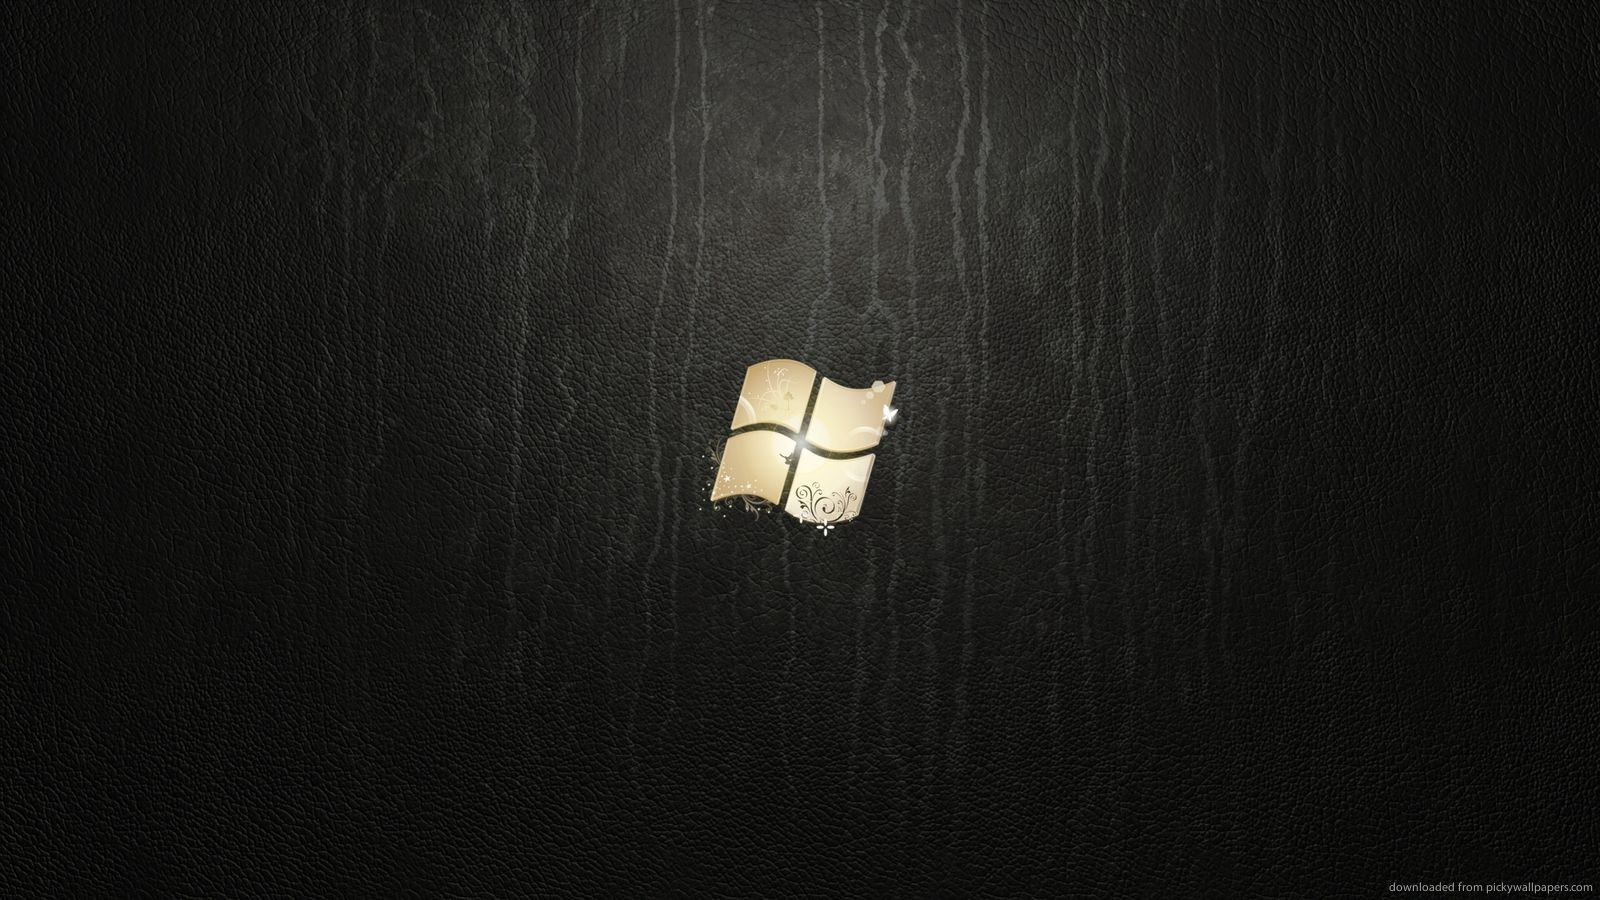 Download Wallpaper x Windows Microsoft Background Dark